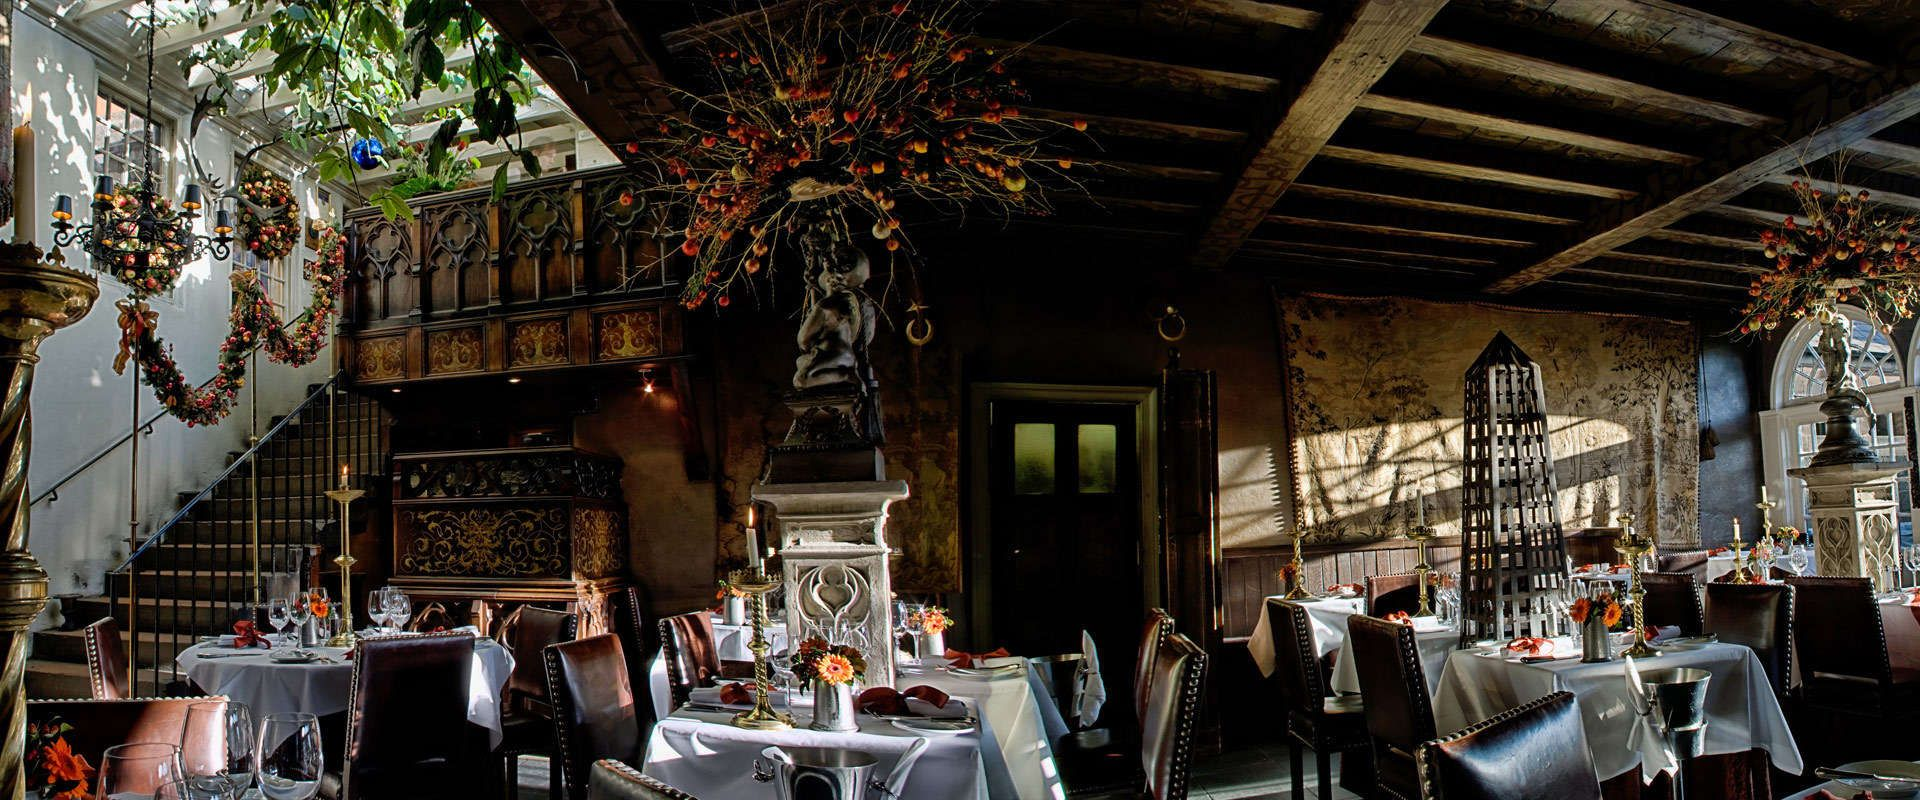 The Witchery is located at the top of the Royal Mile. The